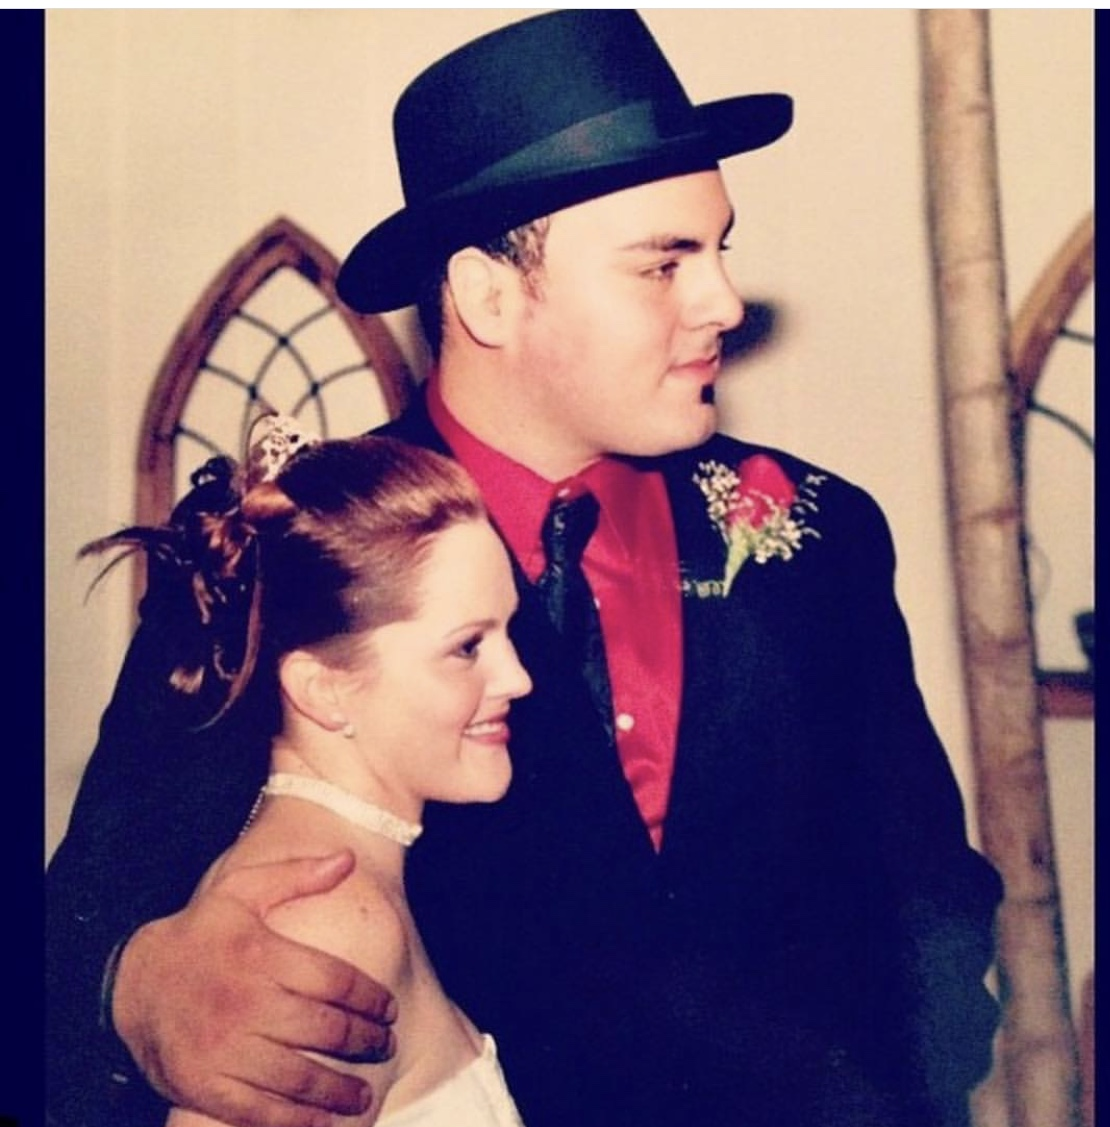 Kim and Levon got married in 2003 at 23 years old. Even then,Levon was killin' the hat game.